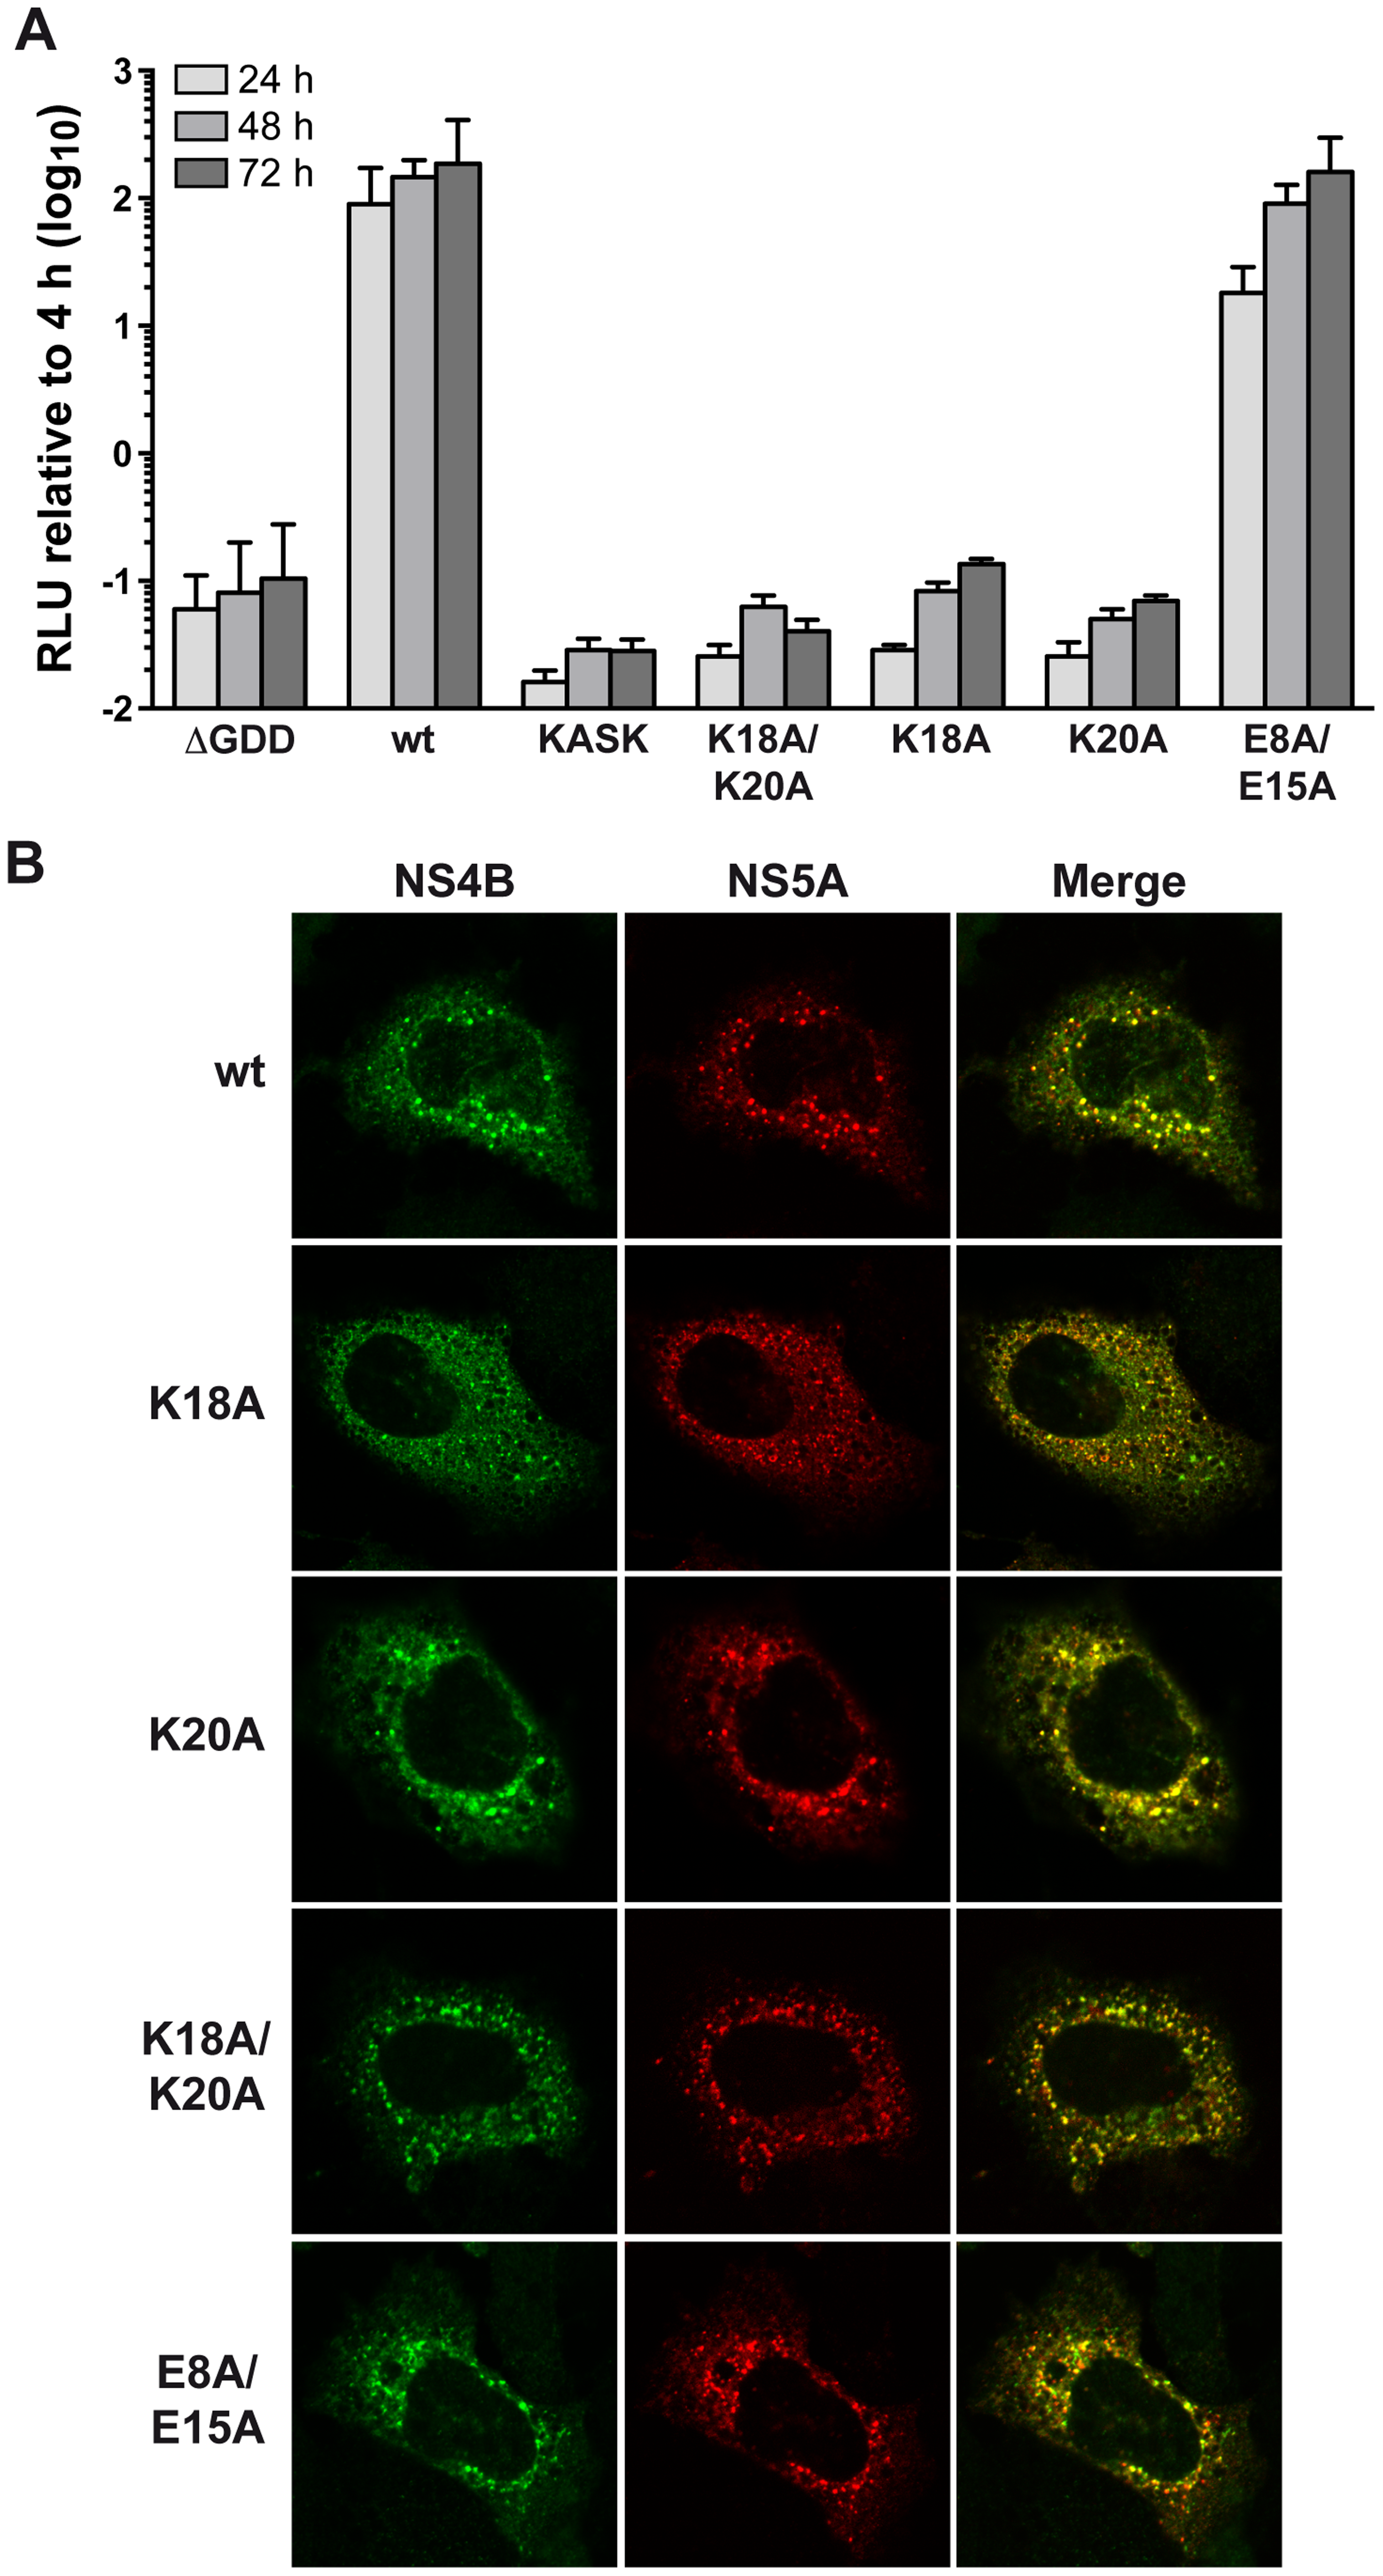 The conserved positively charged amino acids in NS4B AH1 are essential for RNA replication